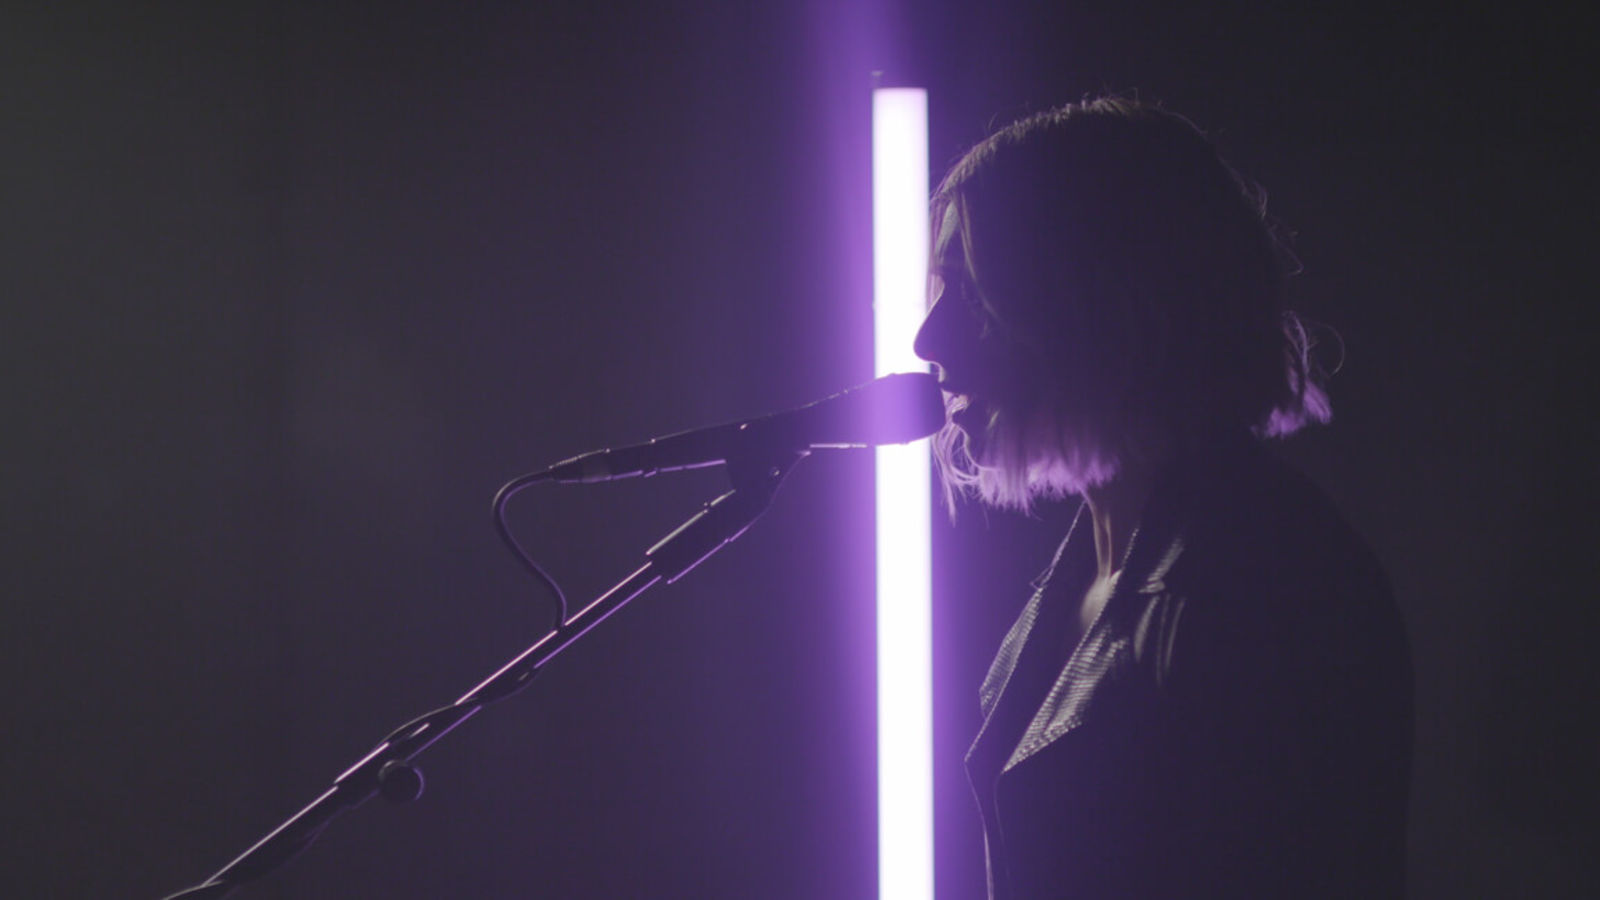 Vérité singing close to her mic and standing before a neon light.